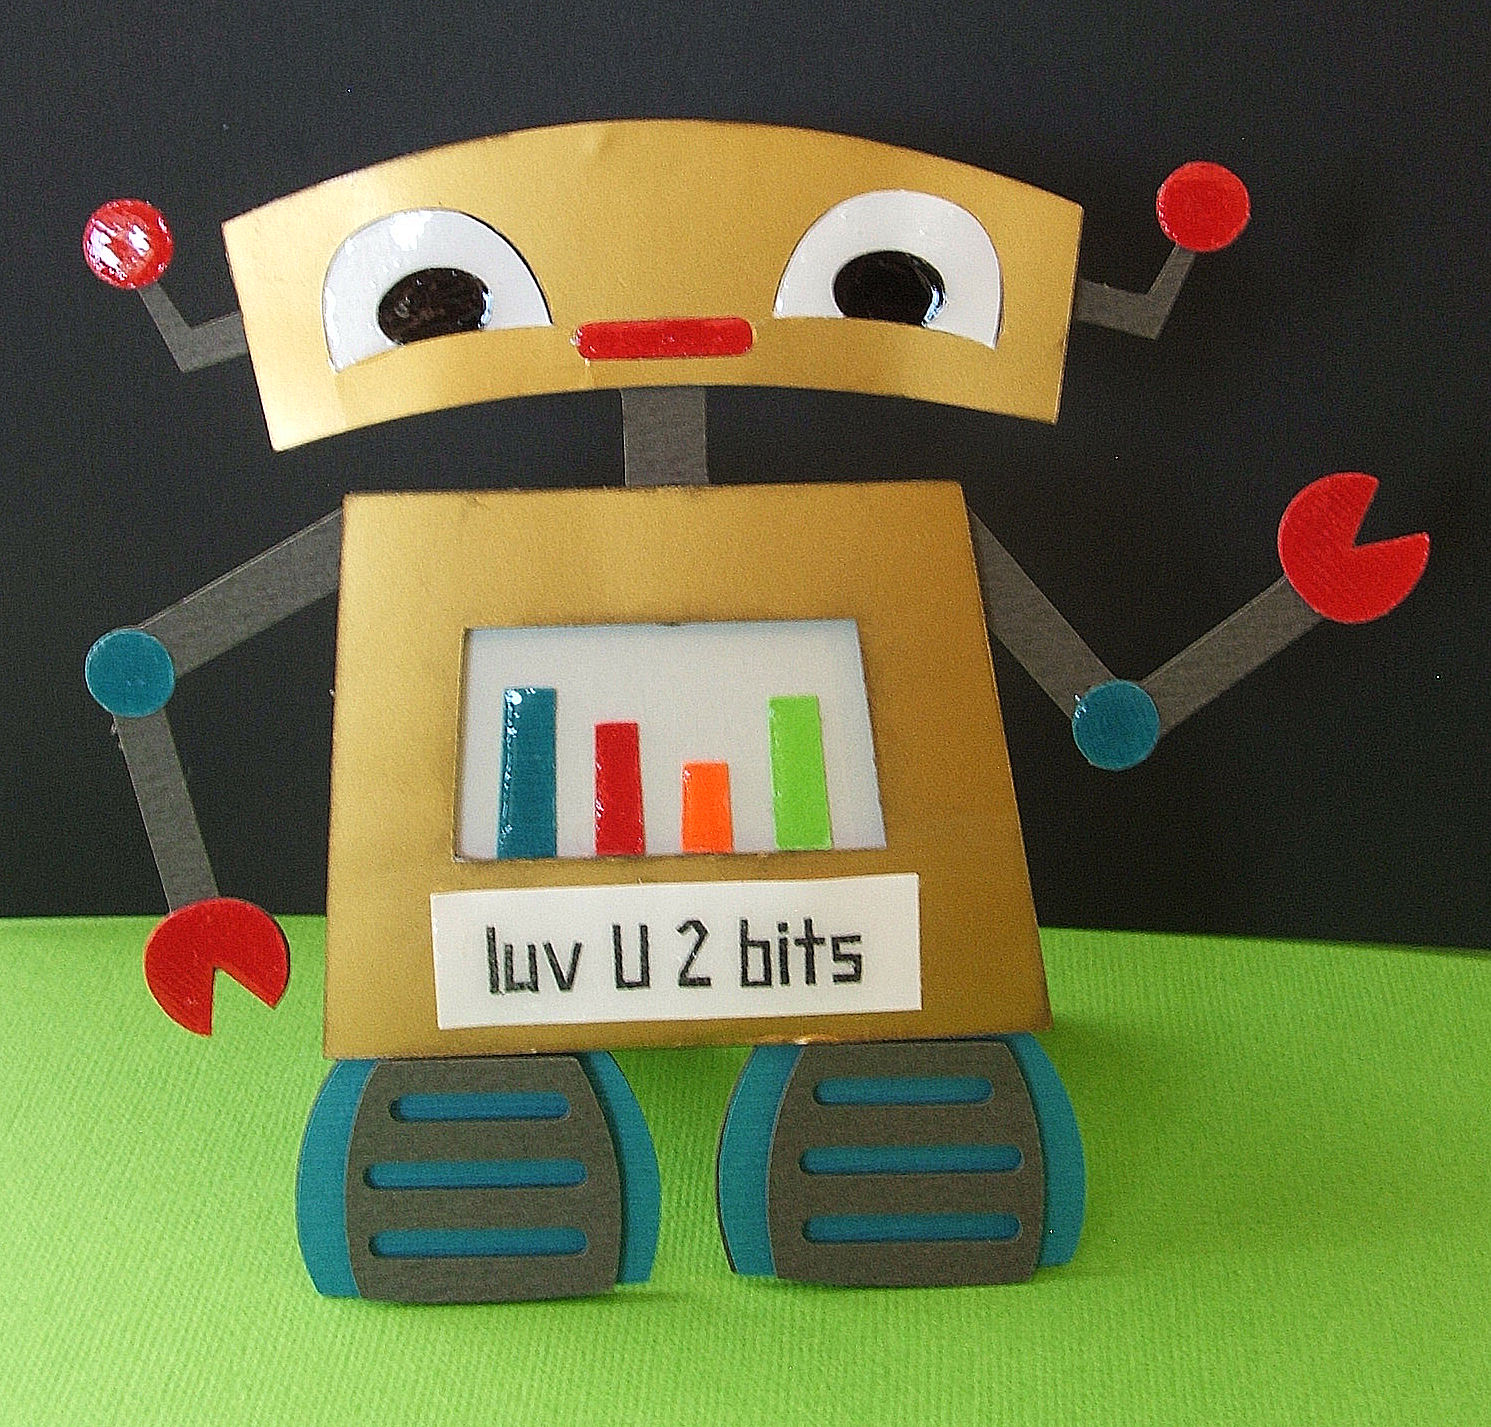 http://craftspotbykimberly.blogspot.com/2014/06/sneak-peek-2-robots.html